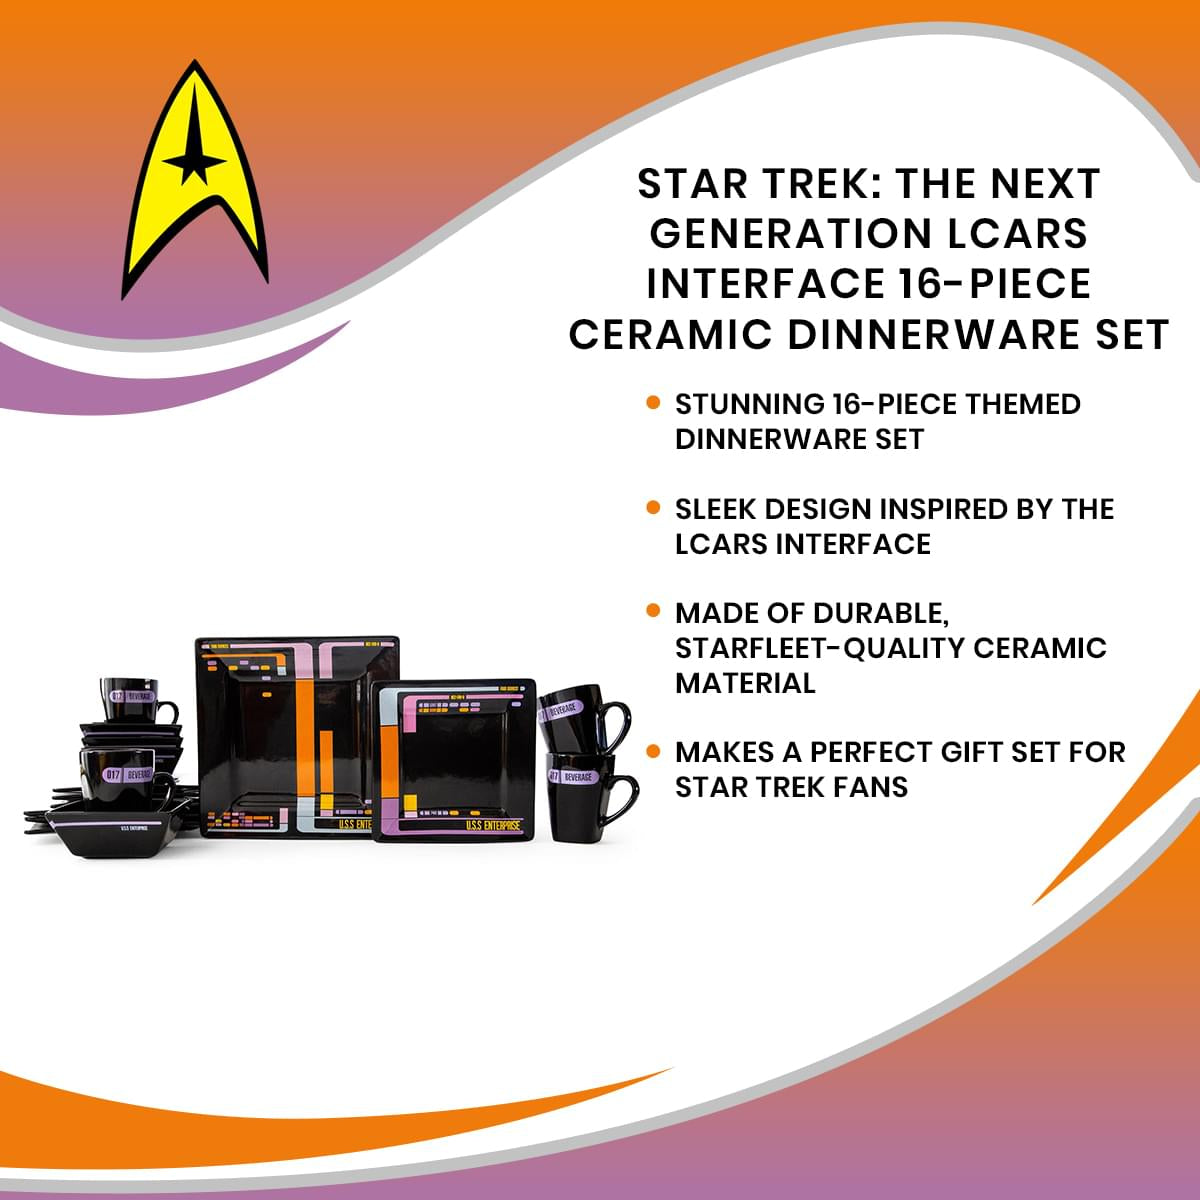 Star Trek: The Next Generation LCARS Interface 16-Piece Ceramic Dinnerware Set